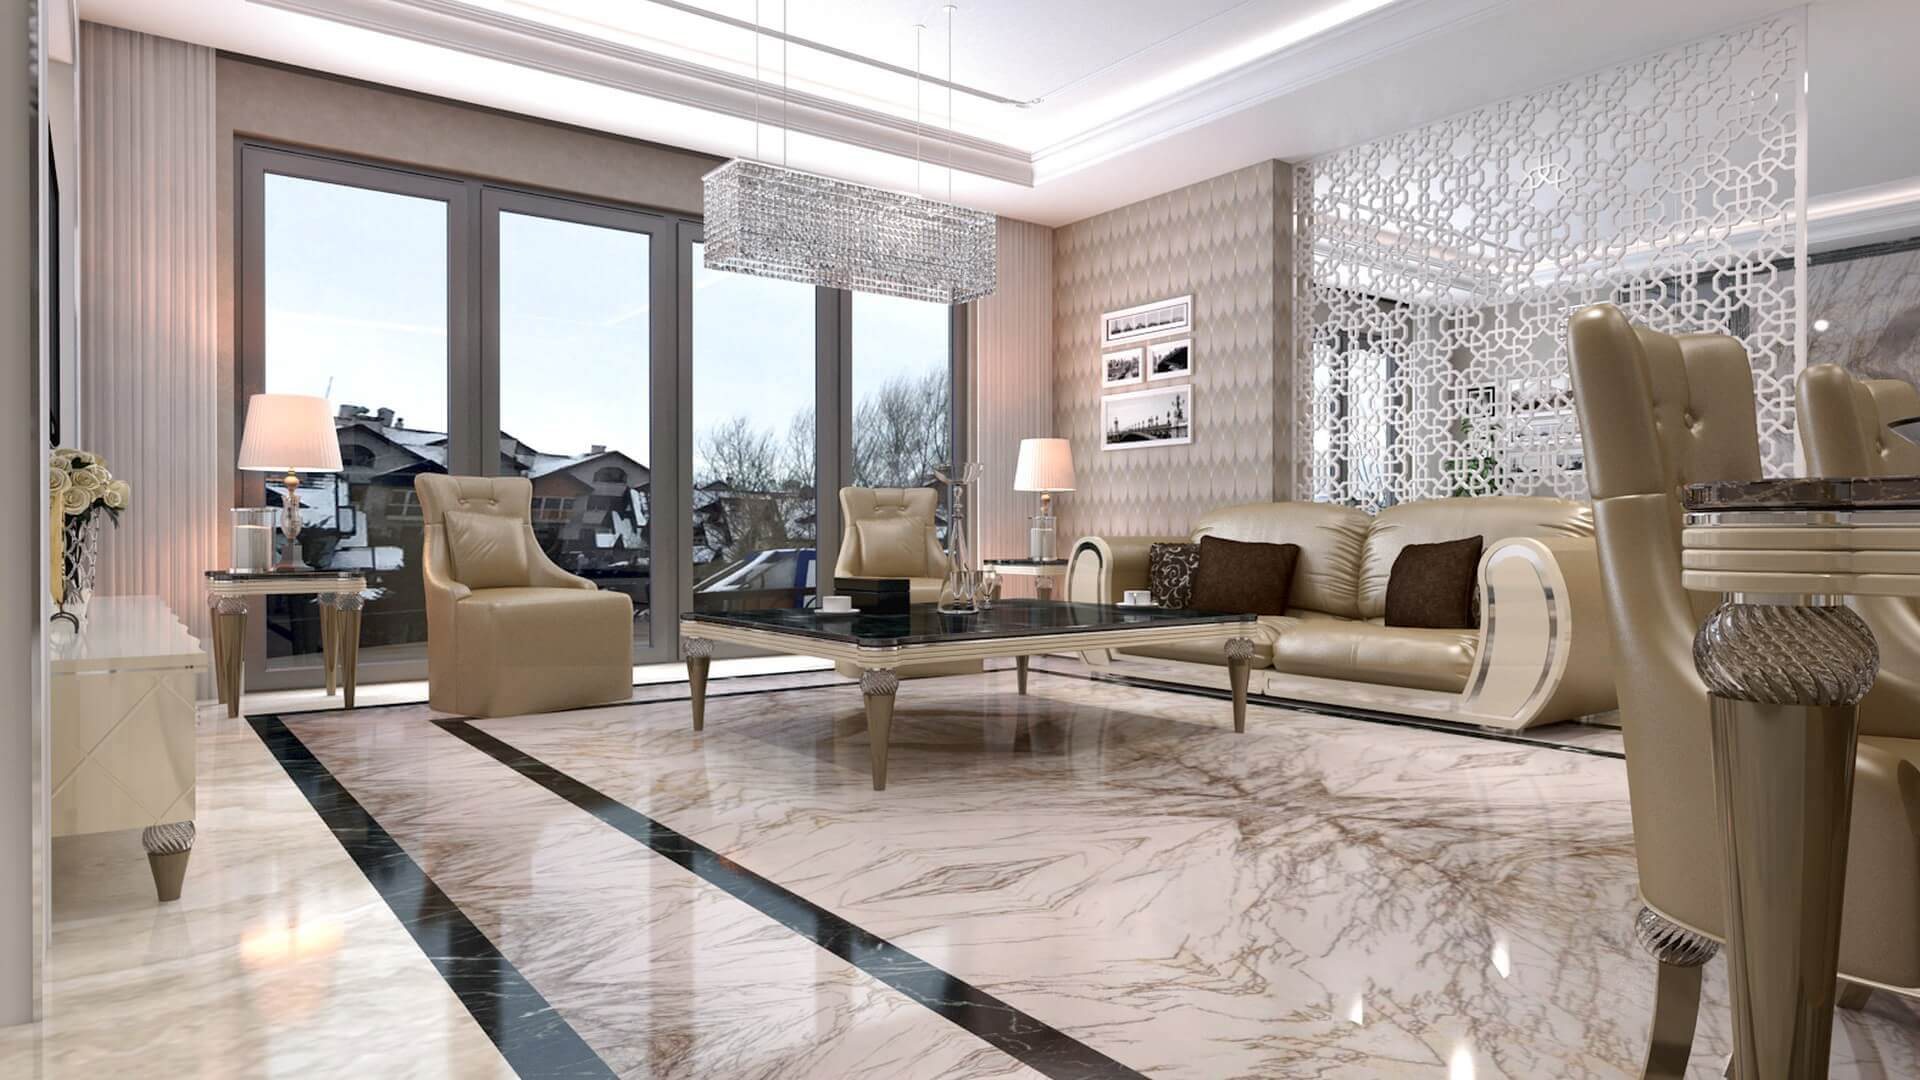 Ankorman Evleri 2827 Private Project Residential